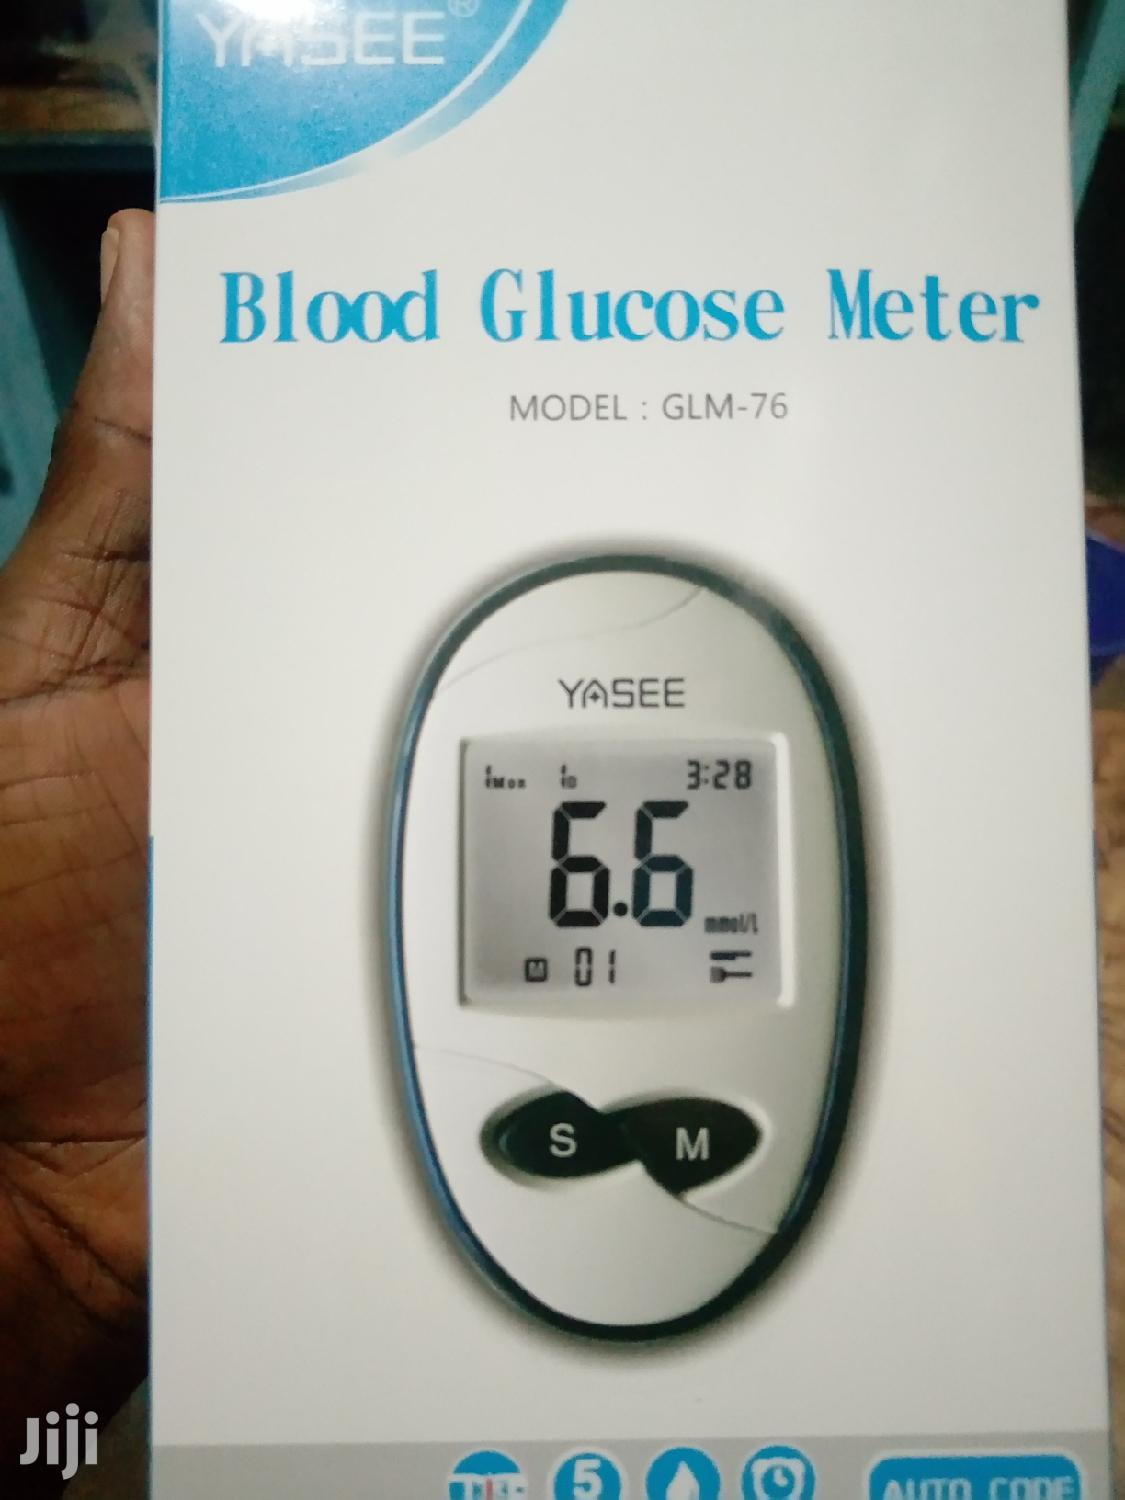 Quality And Durable Glucometer Machine And Strips | Tools & Accessories for sale in Korle Gonno, Greater Accra, Ghana